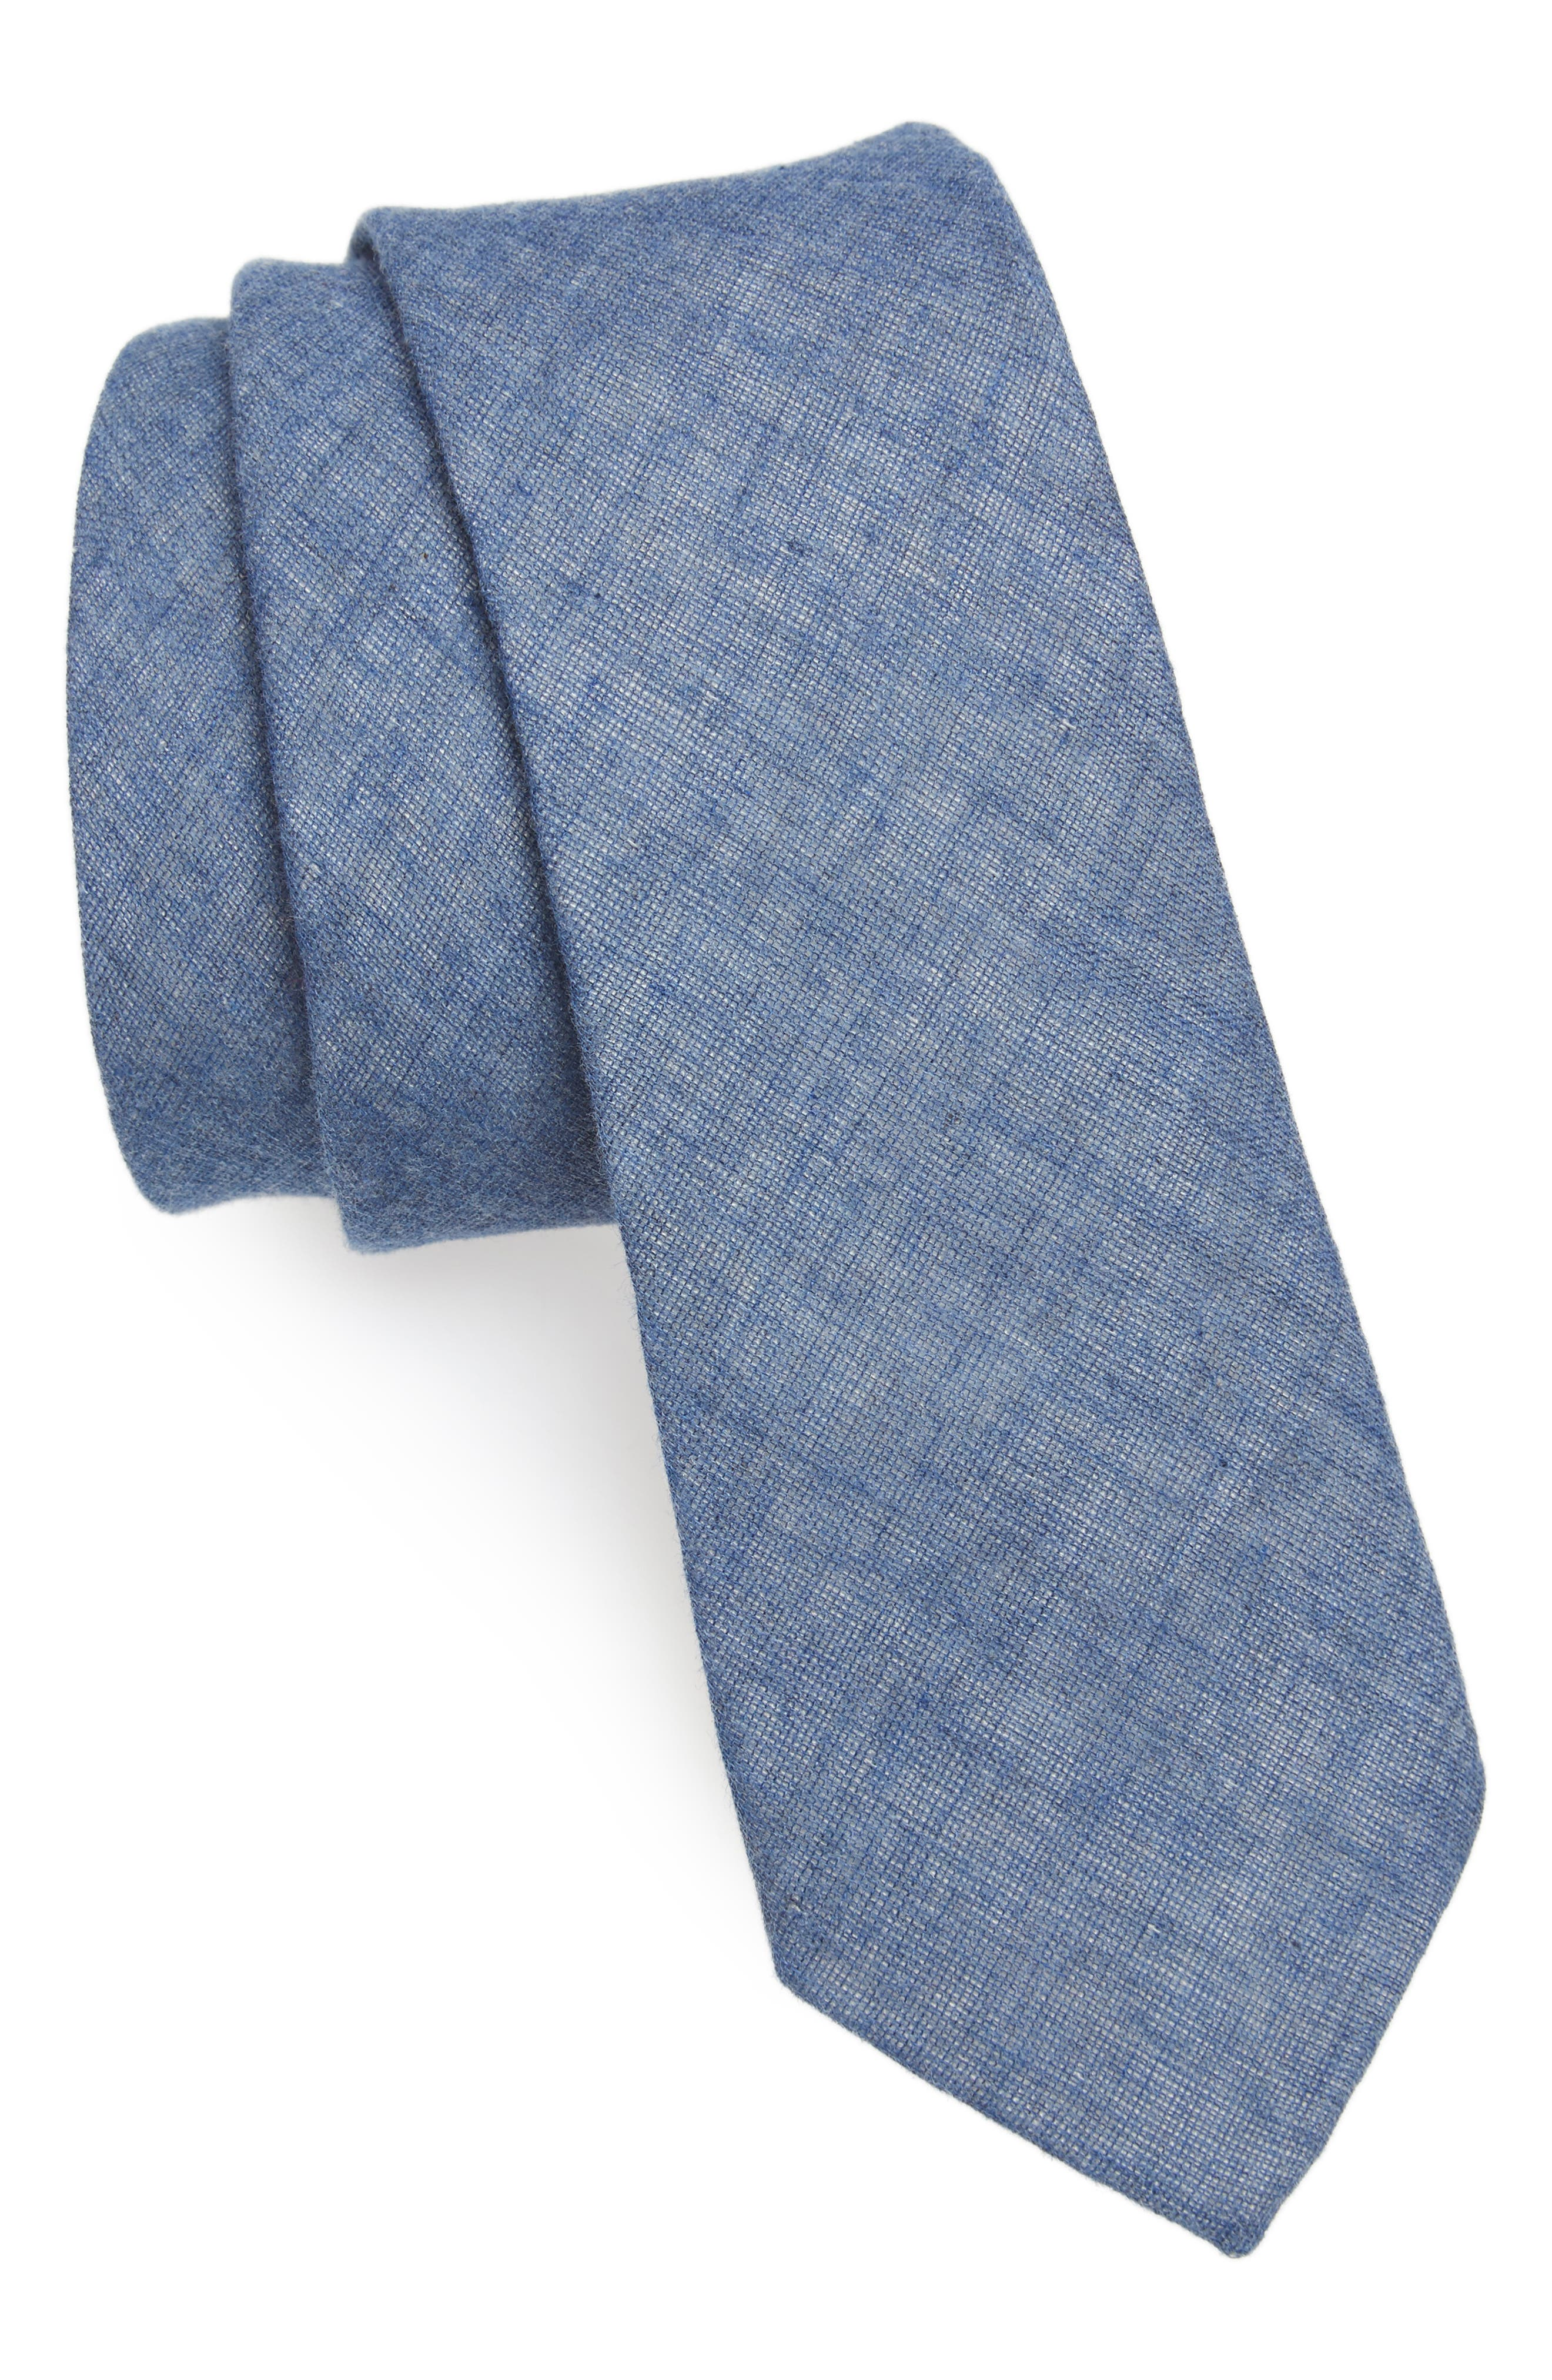 Alternate Image 1 Selected - 1901 Bedell Solid Cotton Tie